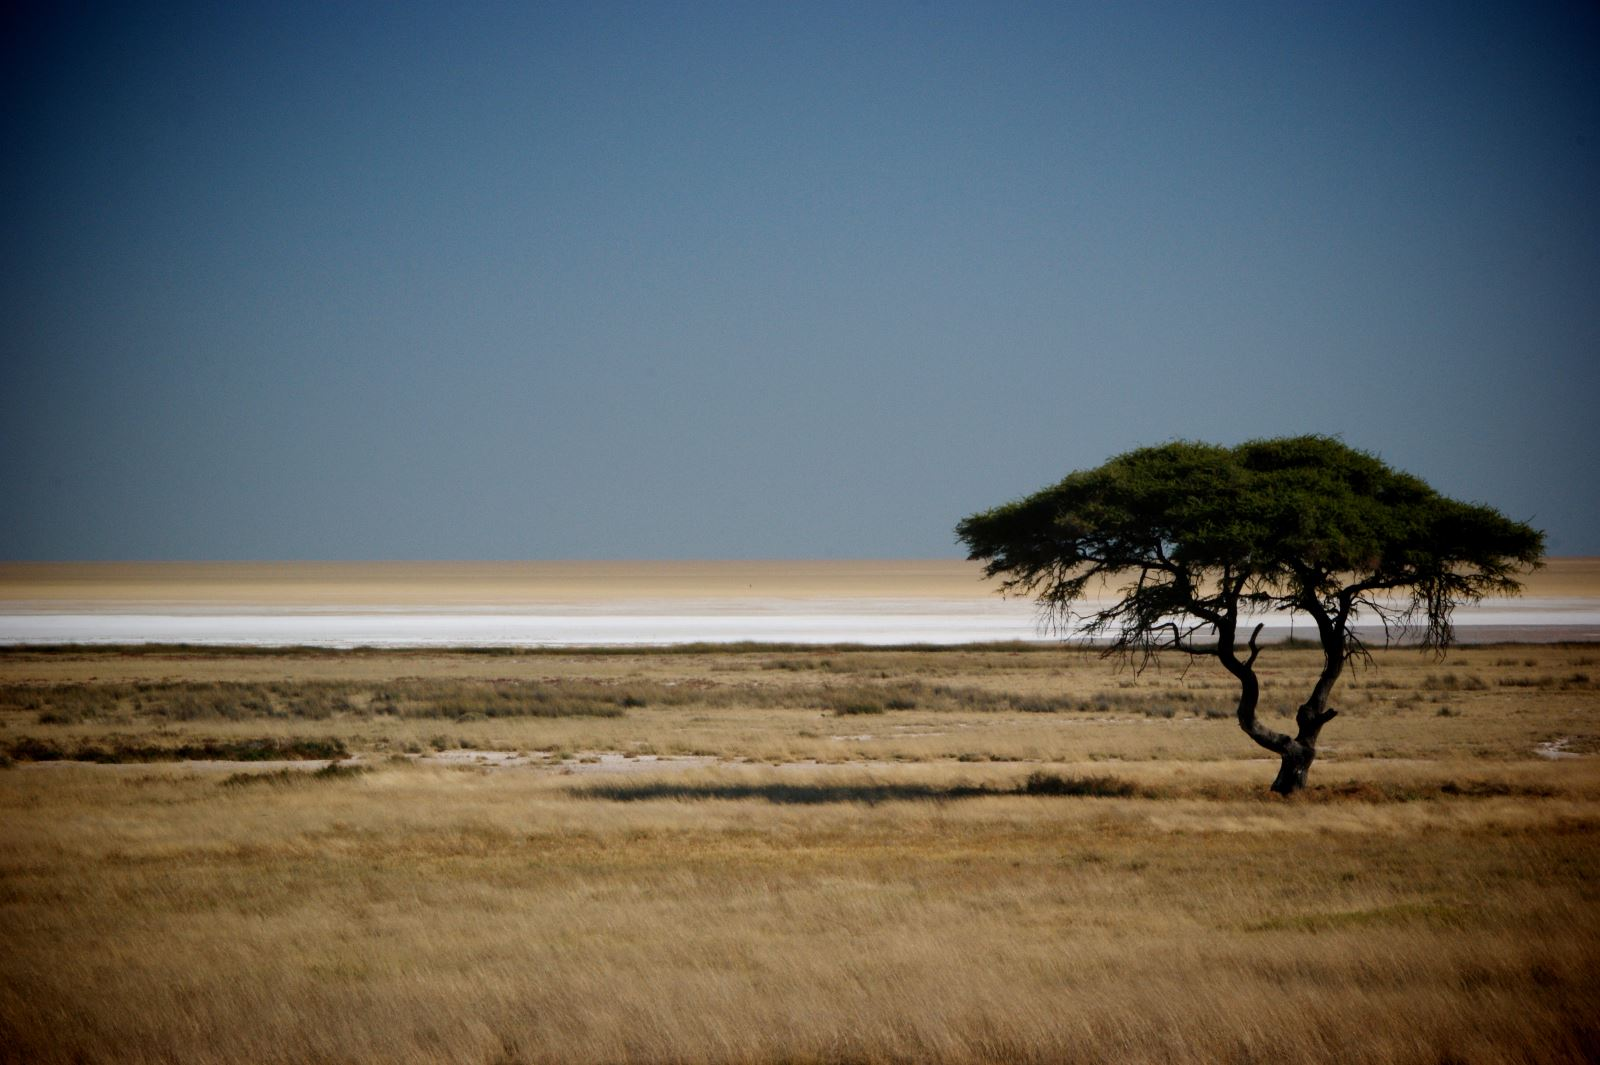 Safari in Etosha National Park, Namibia